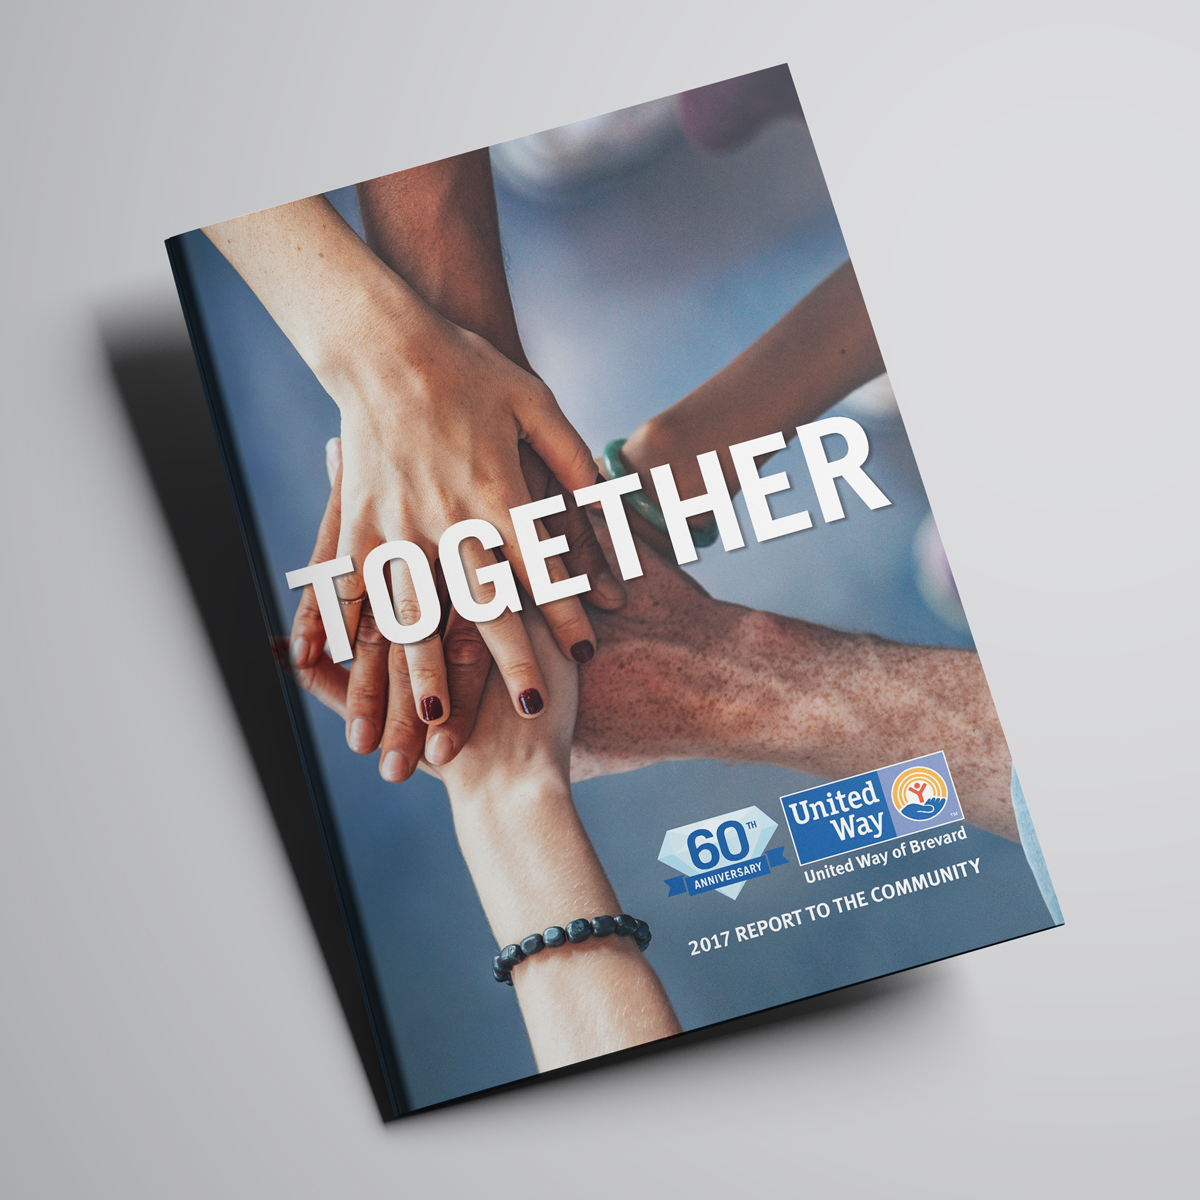 United way together campaign cover